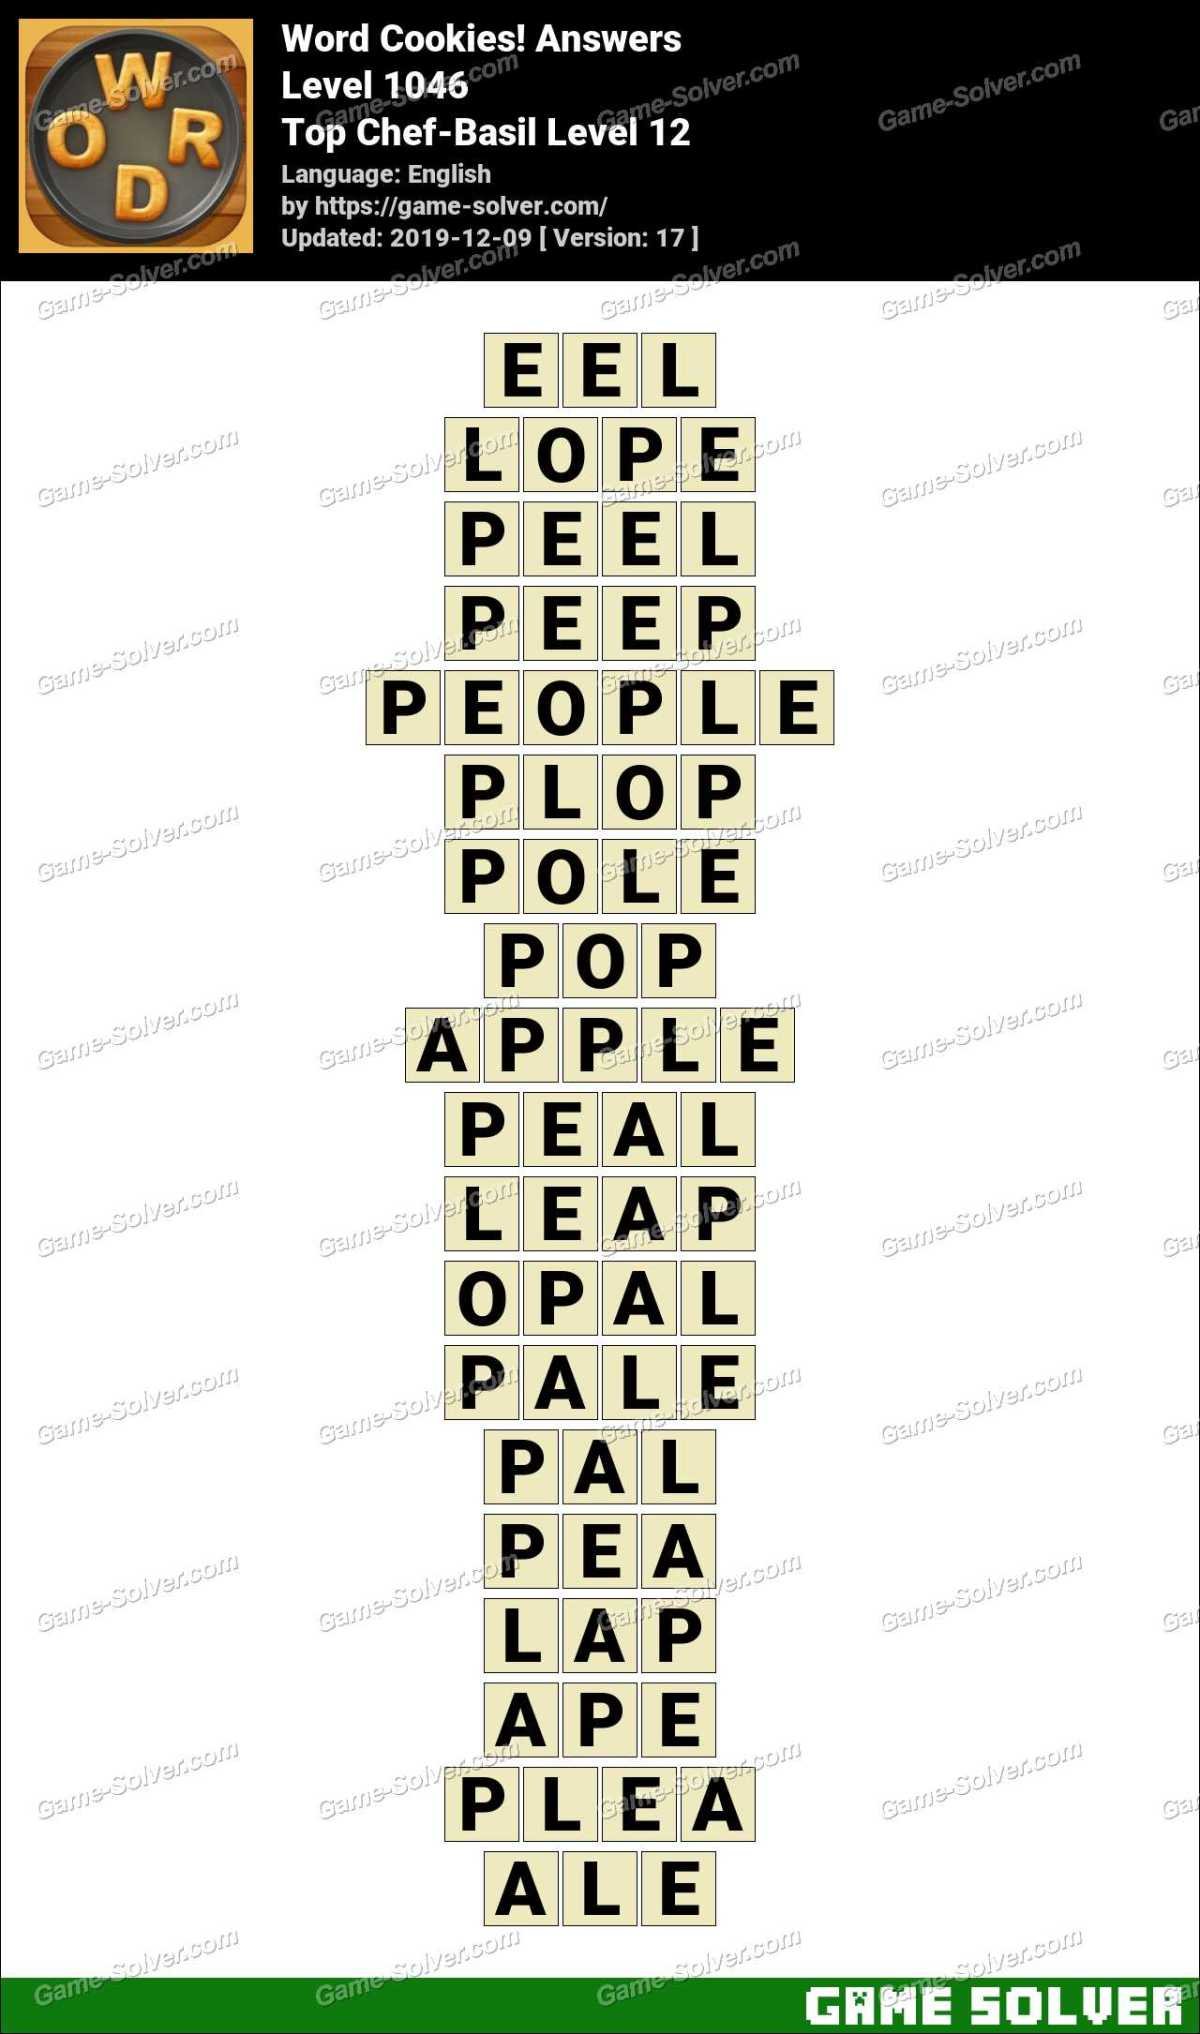 Word Cookies Top Chef-Basil Level 12 Answers